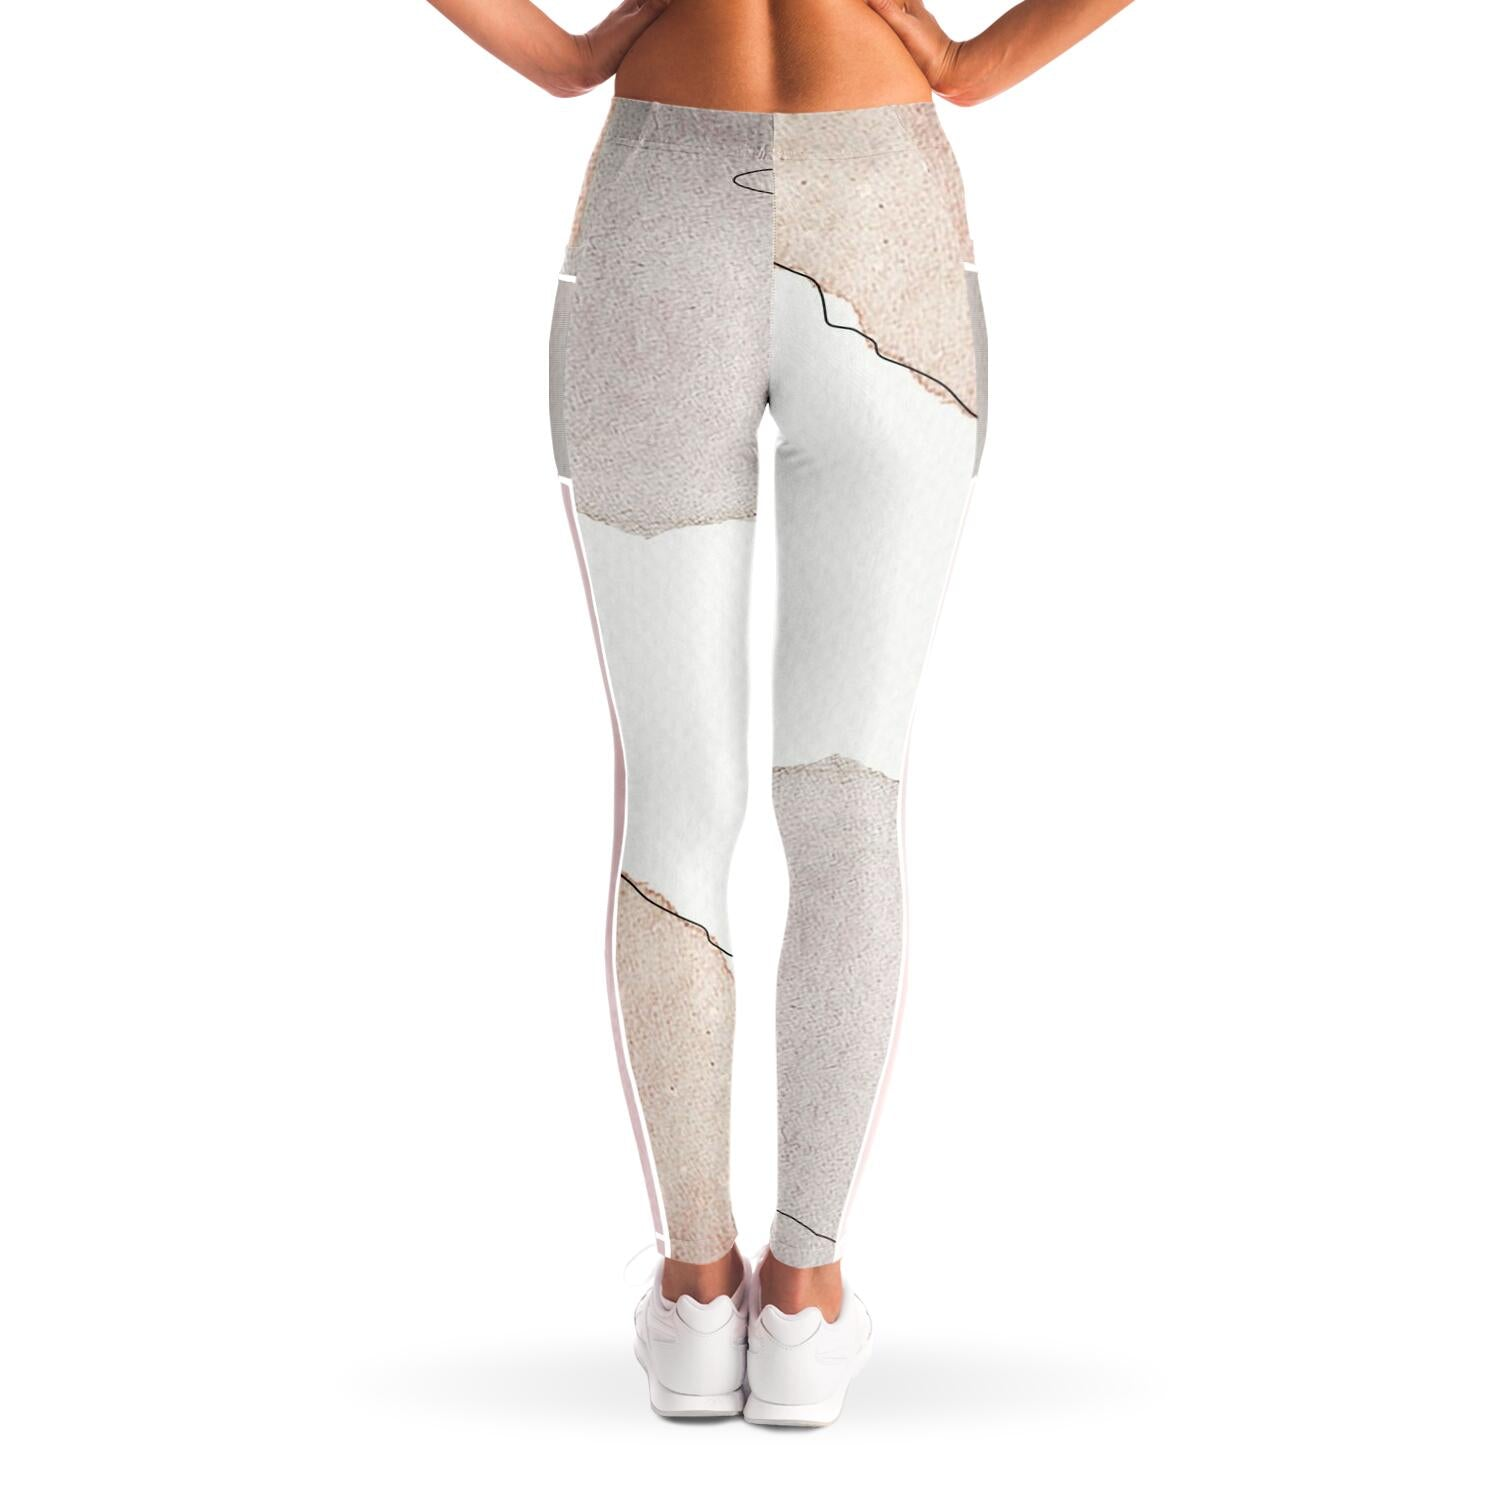 Abstract Art Yoga pants with mesh